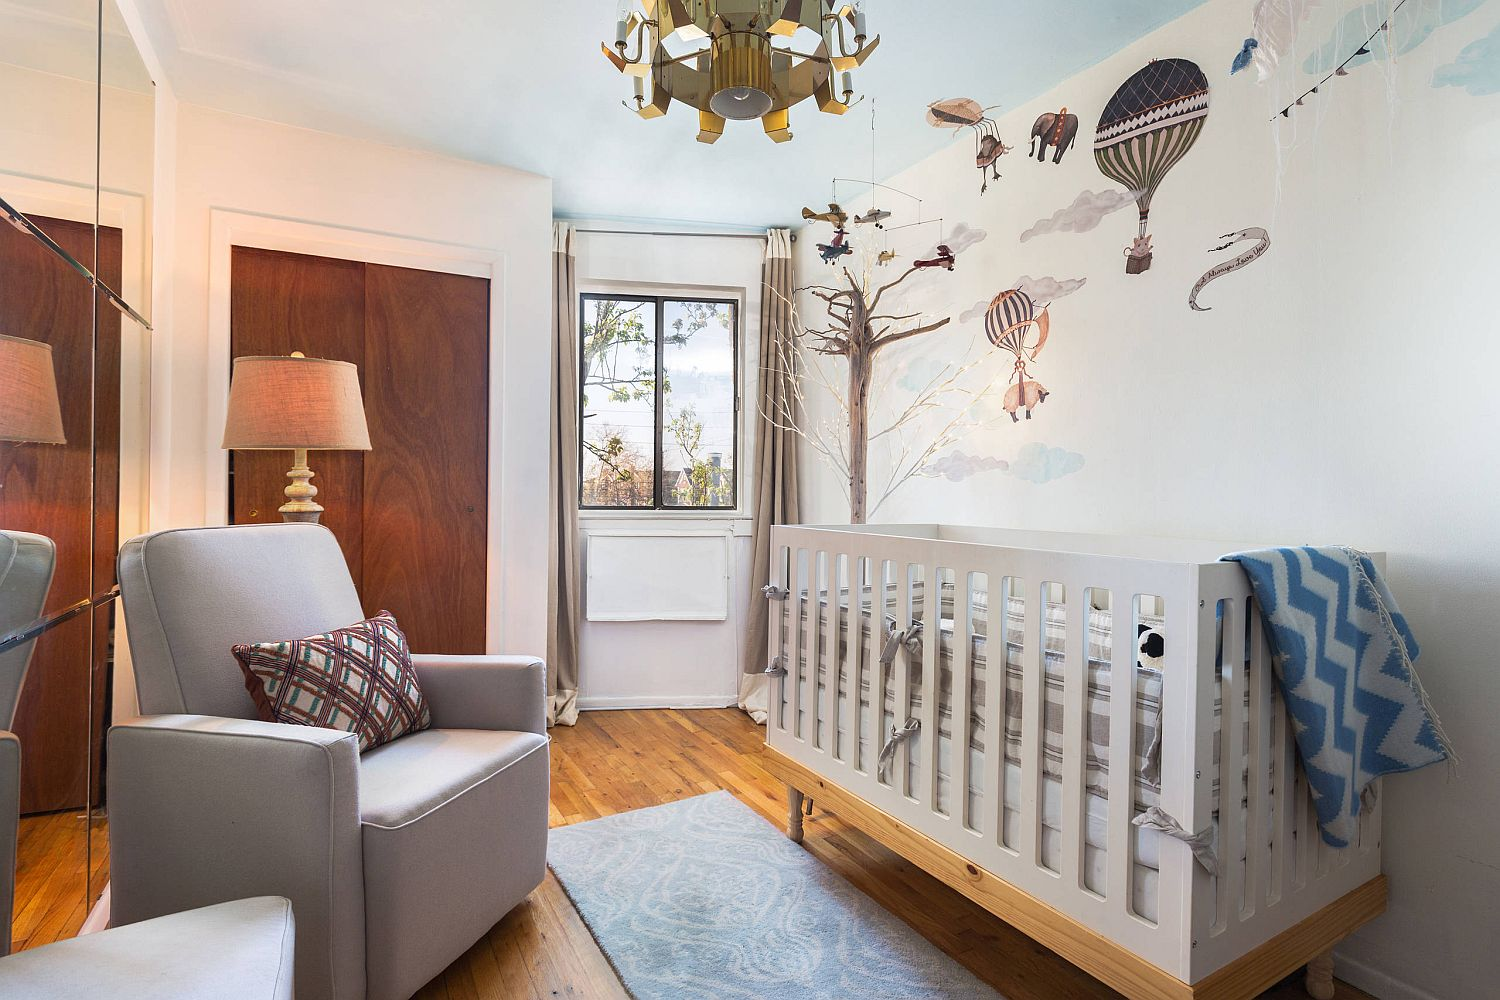 Custom wall decal in the backdrop makes for an interesting visual in the small eclectic nursery with ample natural light